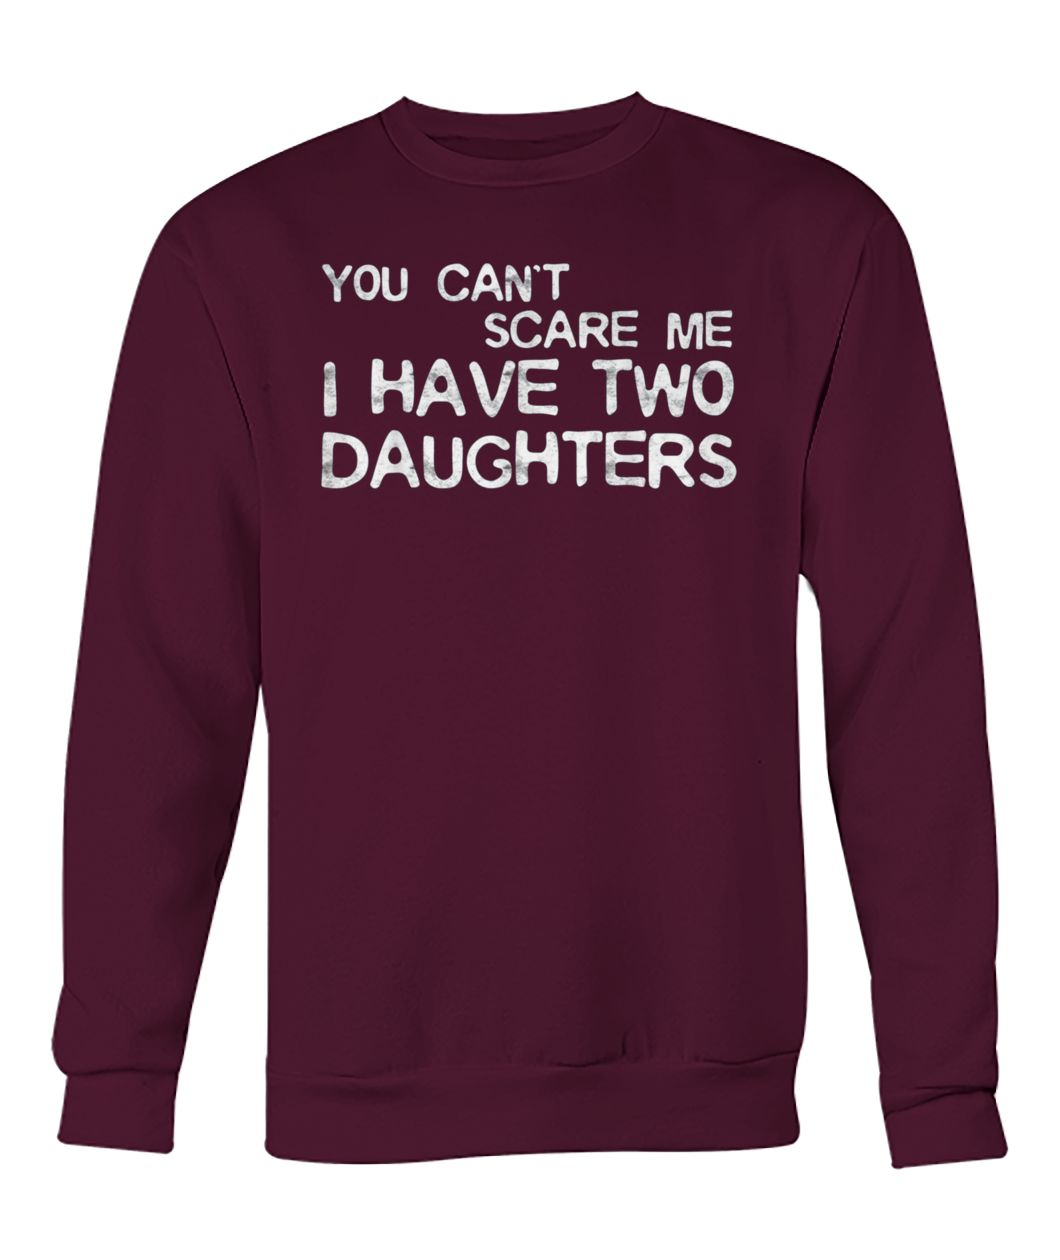 You can't scare me I have two daughters crew neck sweatshirt